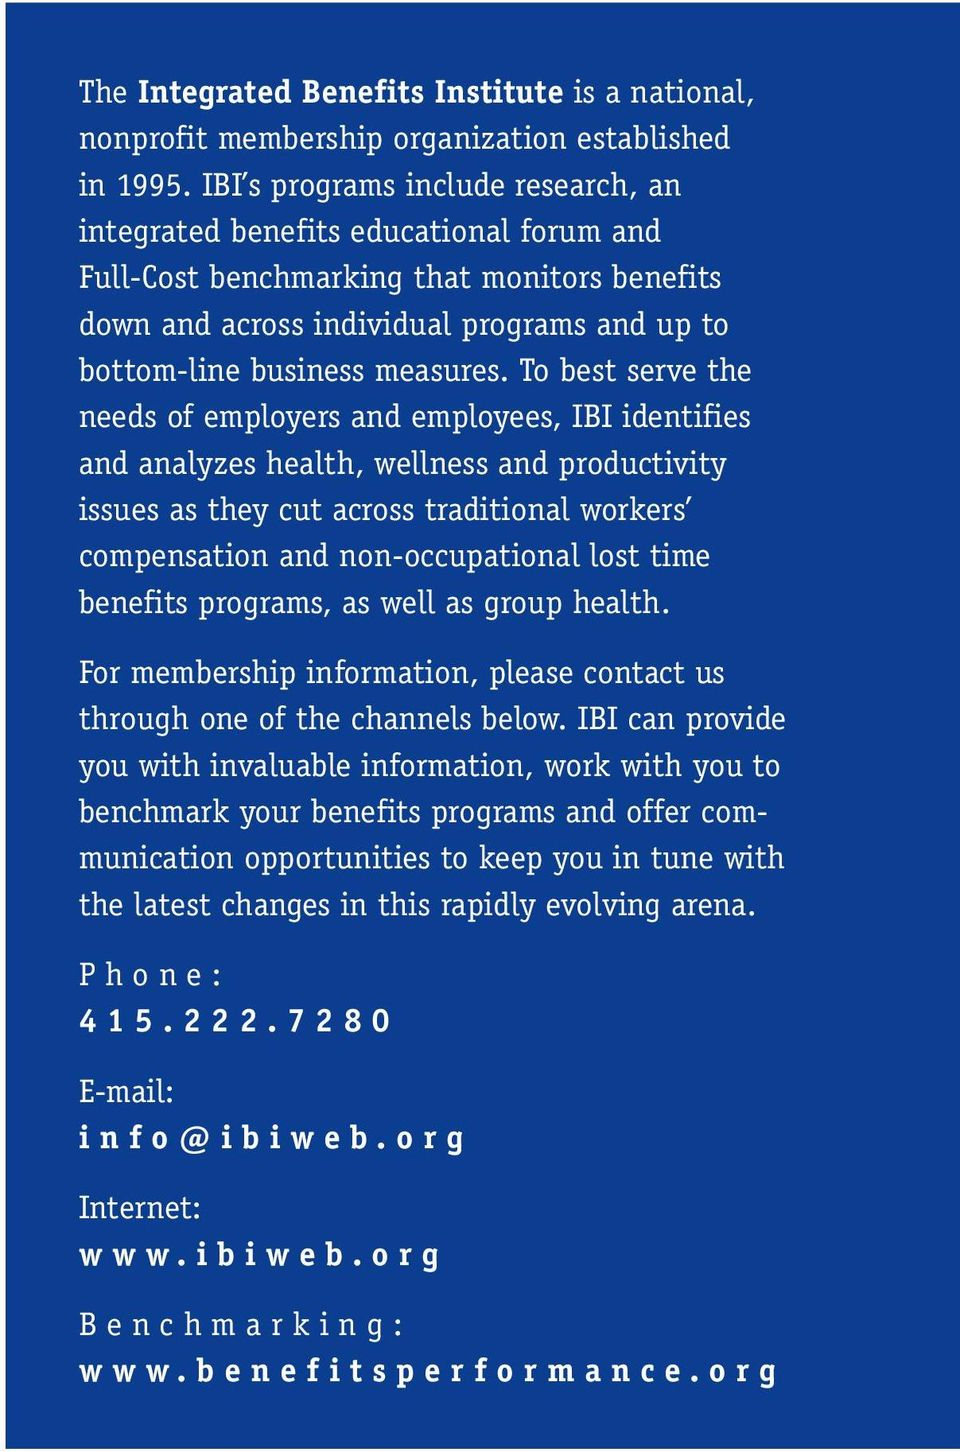 To best serve the needs of employers and employees, IBI identifies and analyzes health, wellness and productivity issues as they cut across traditional workers compensation and non-occupational lost